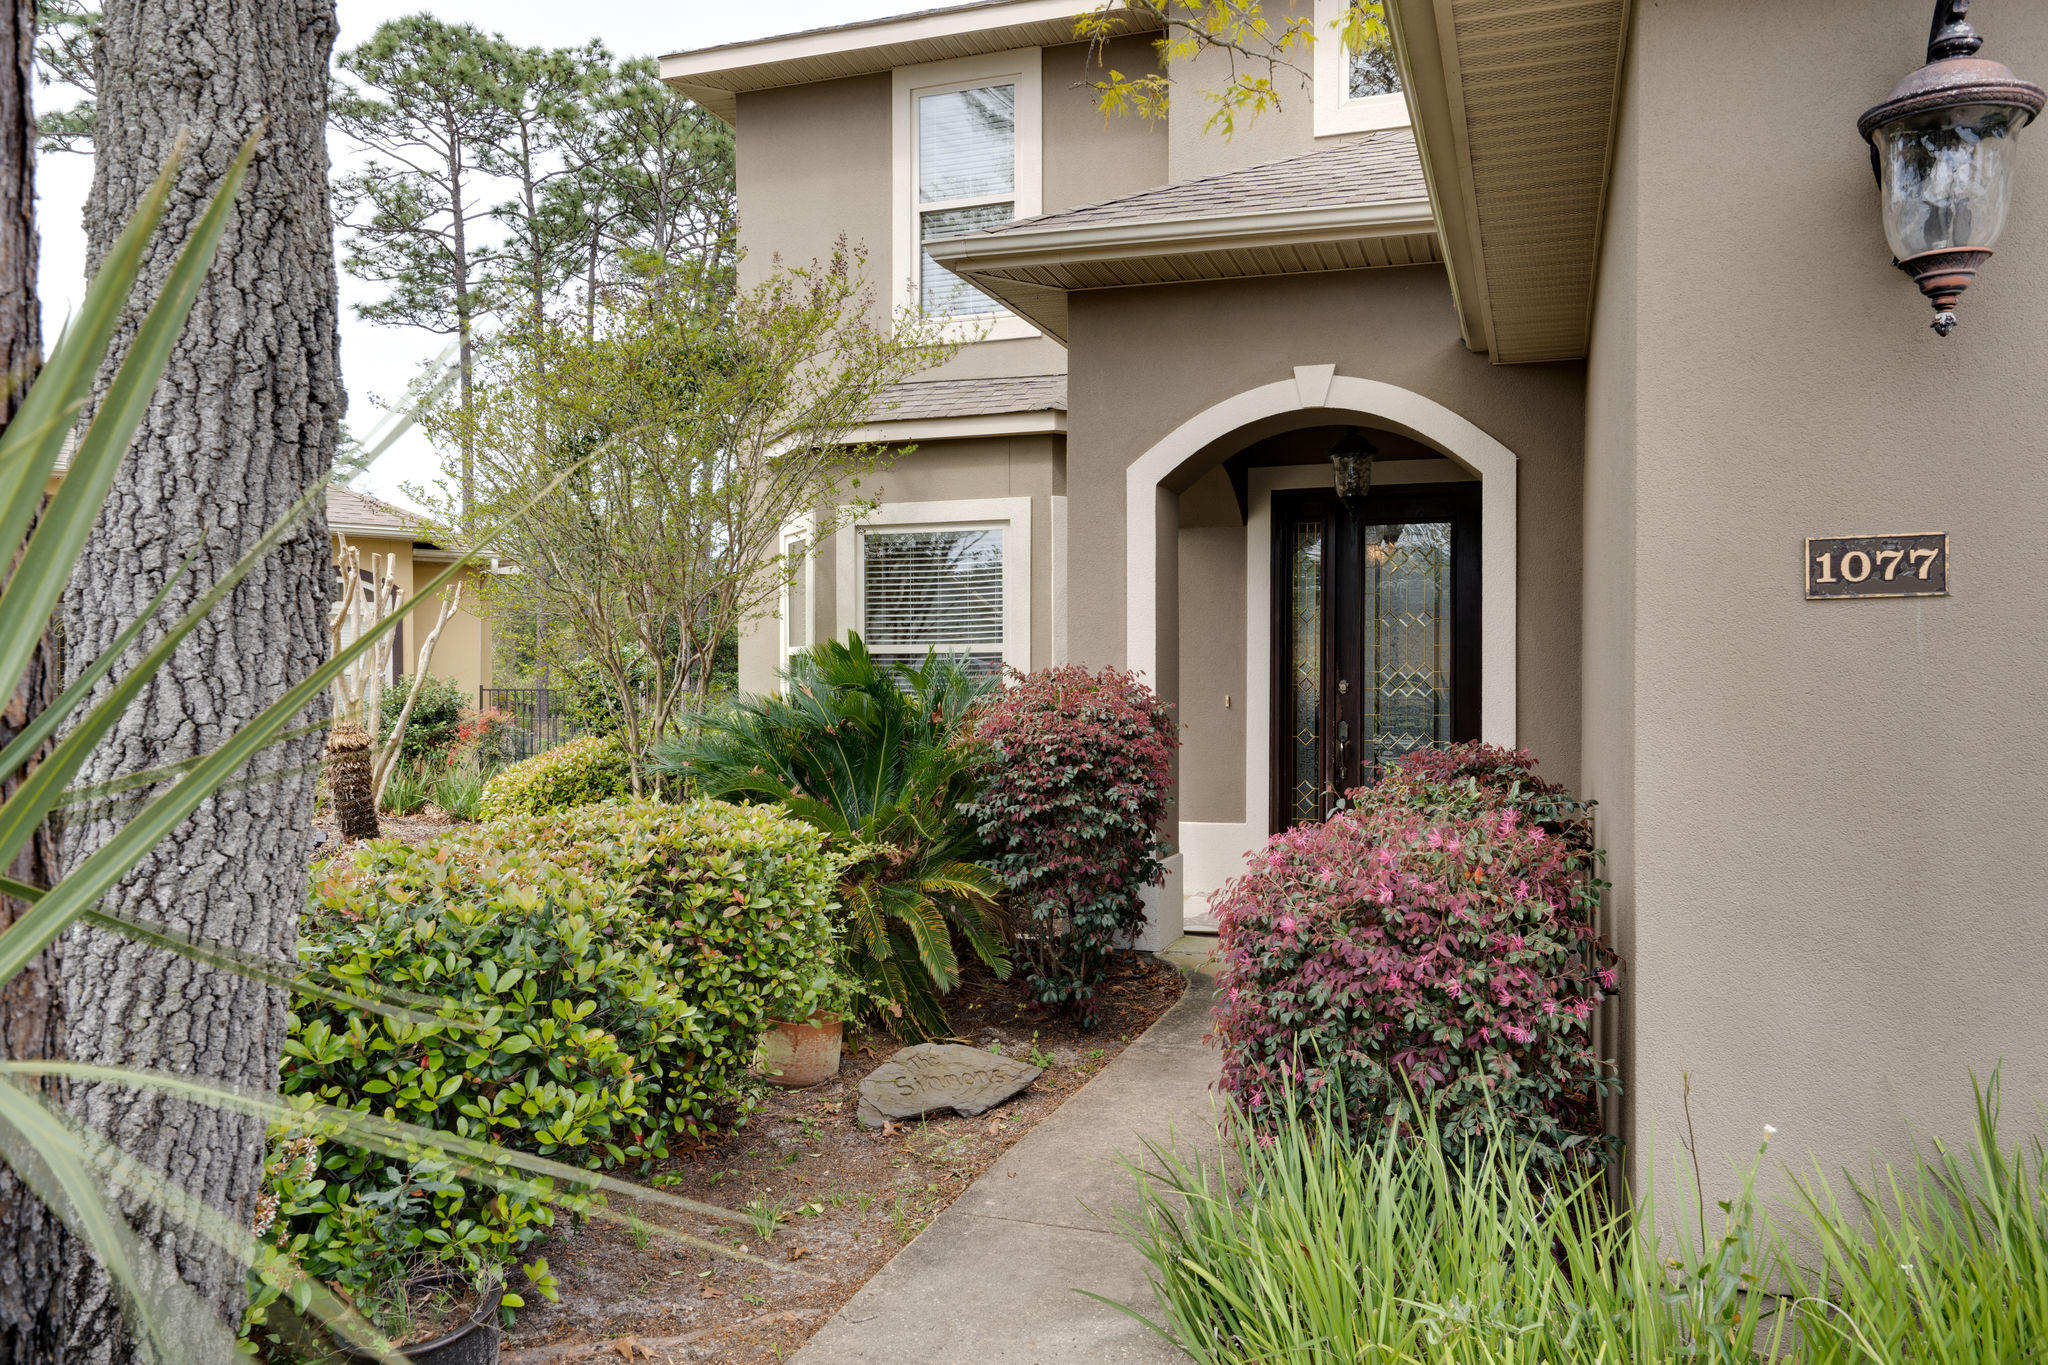 1077 Napa Way, Niceville, FL 32578